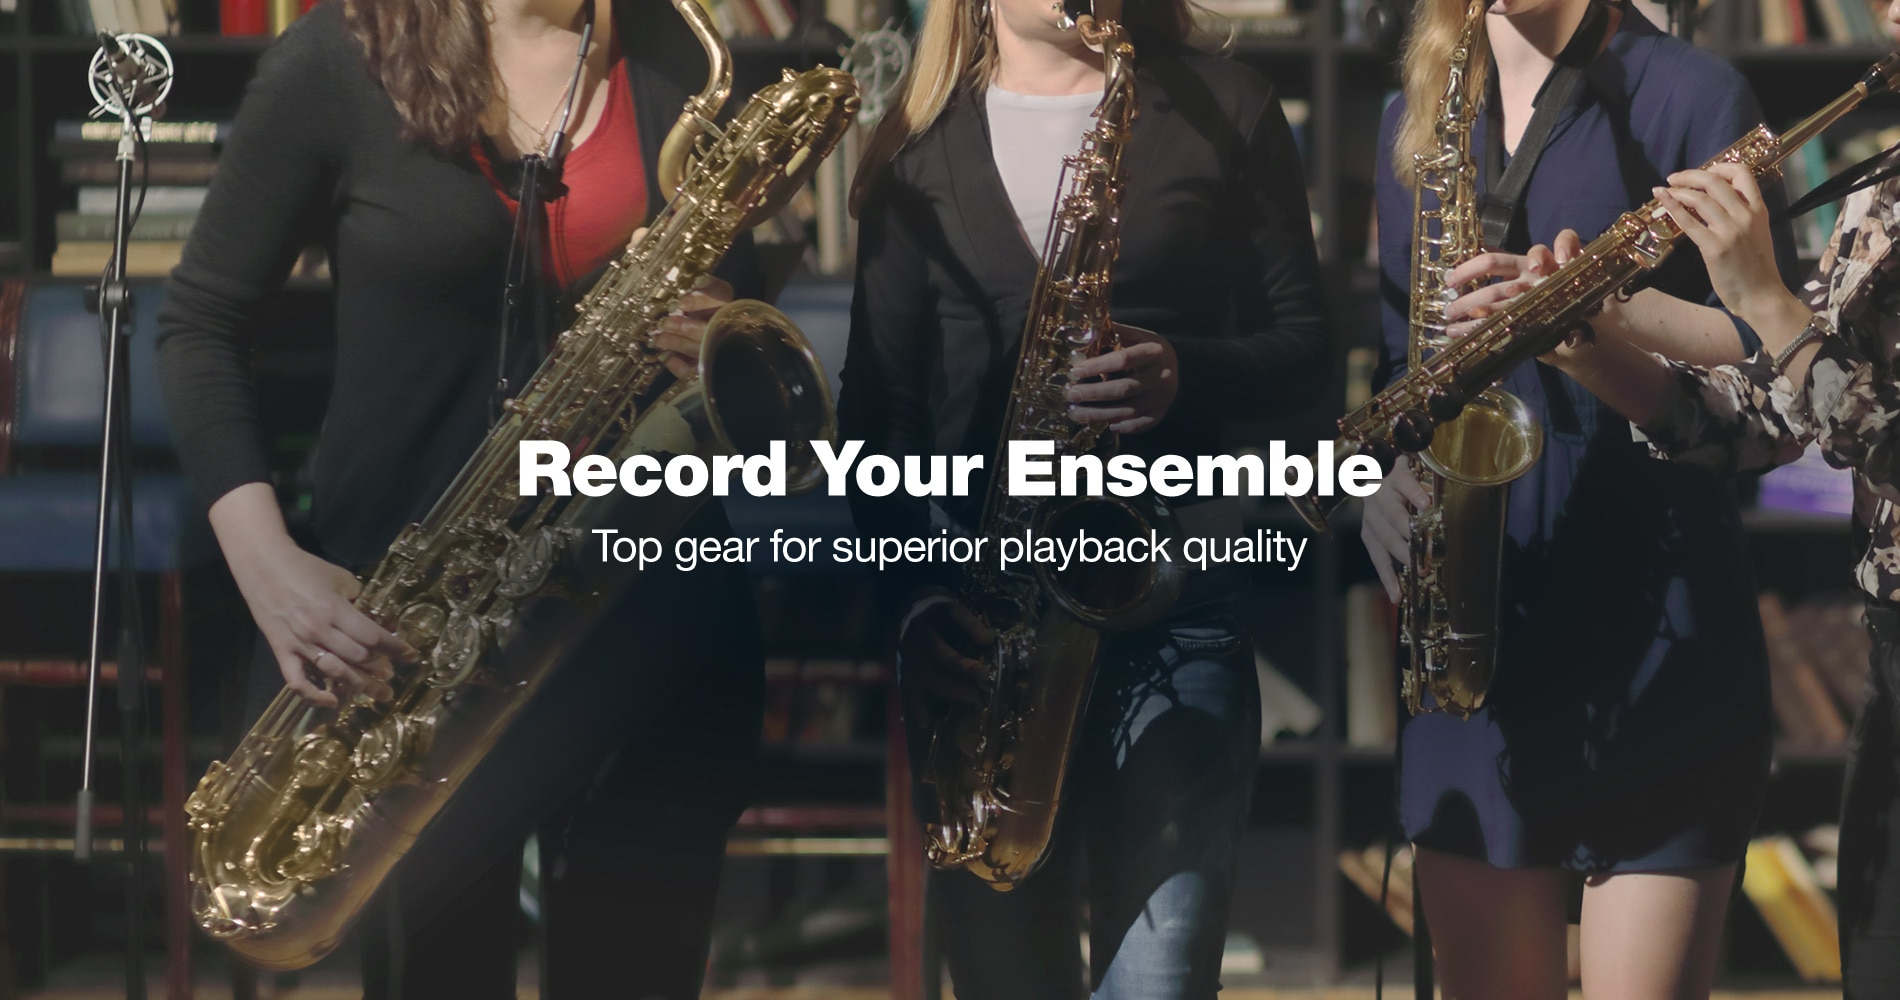 Tips for Recording Your Ensemble